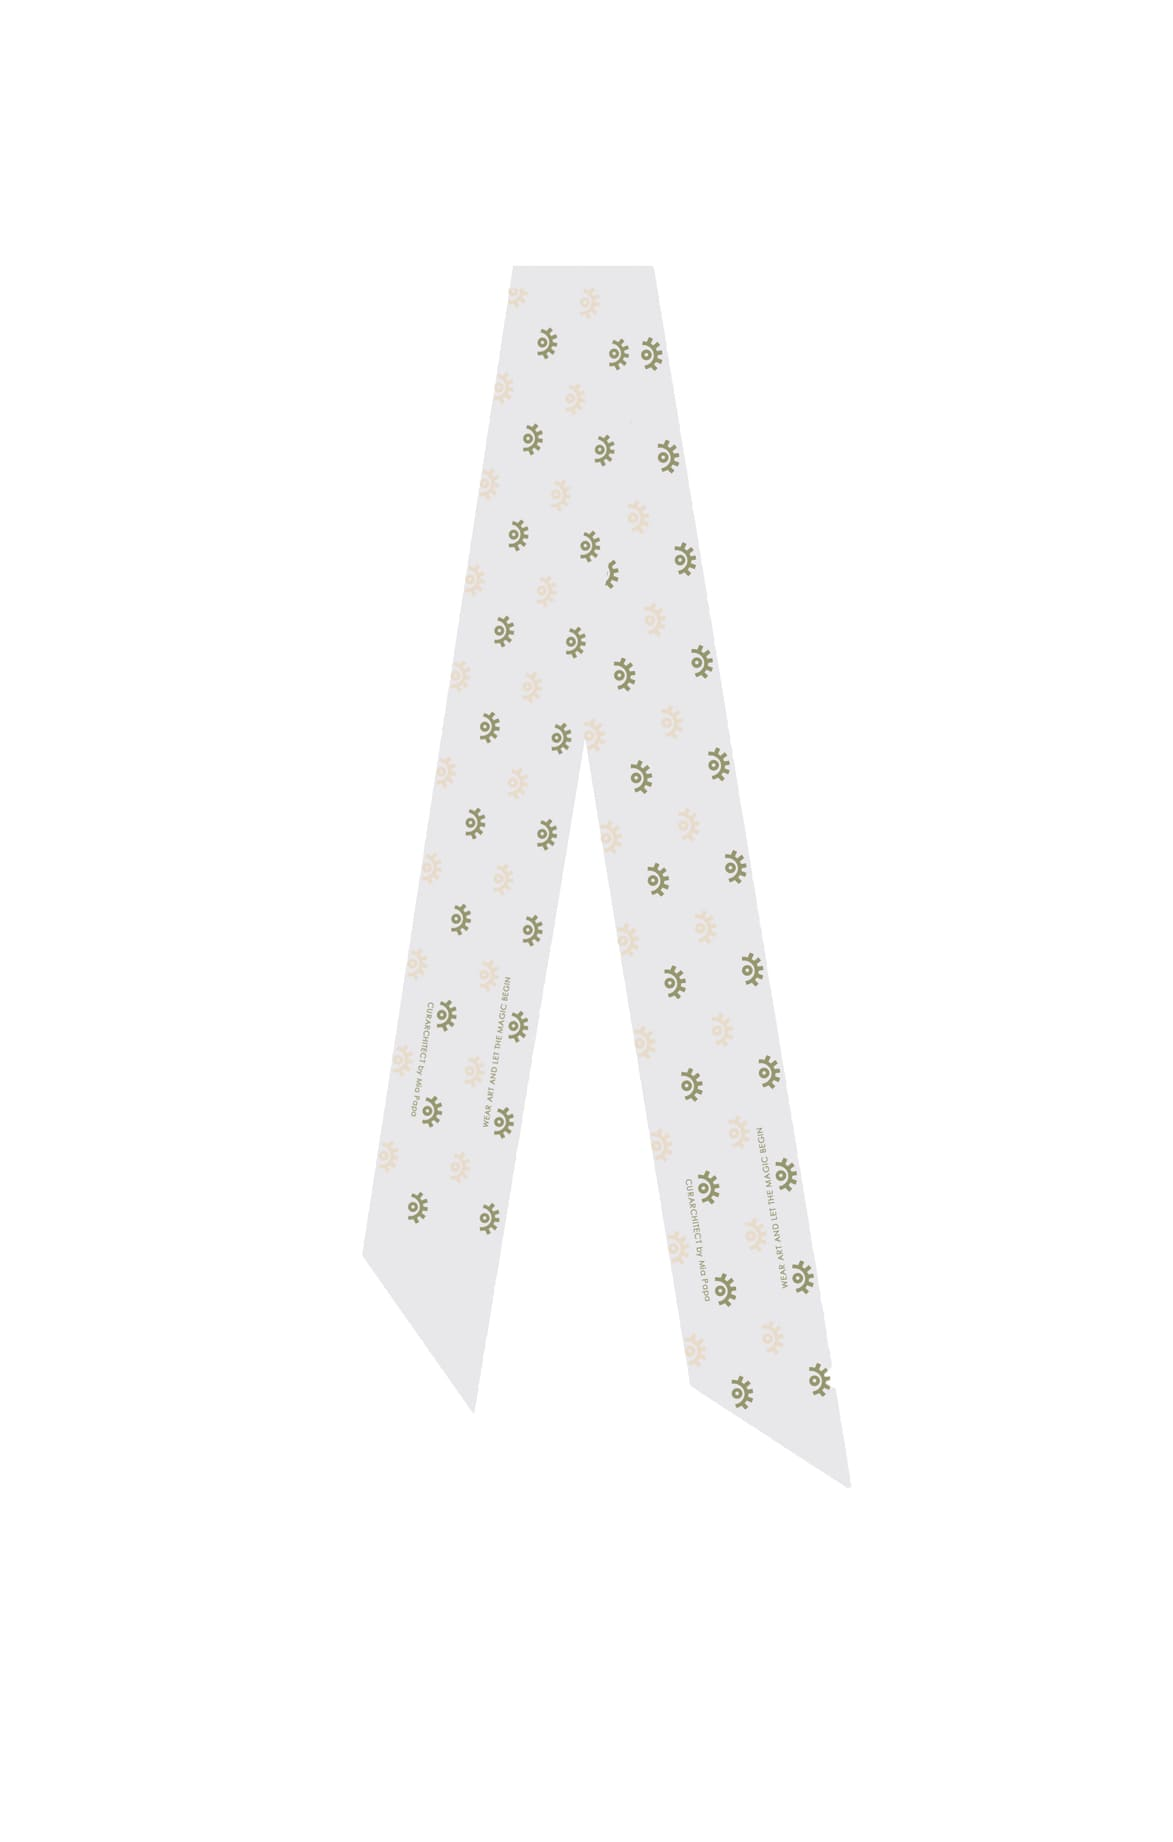 Athens Ribbon Silk Scarf